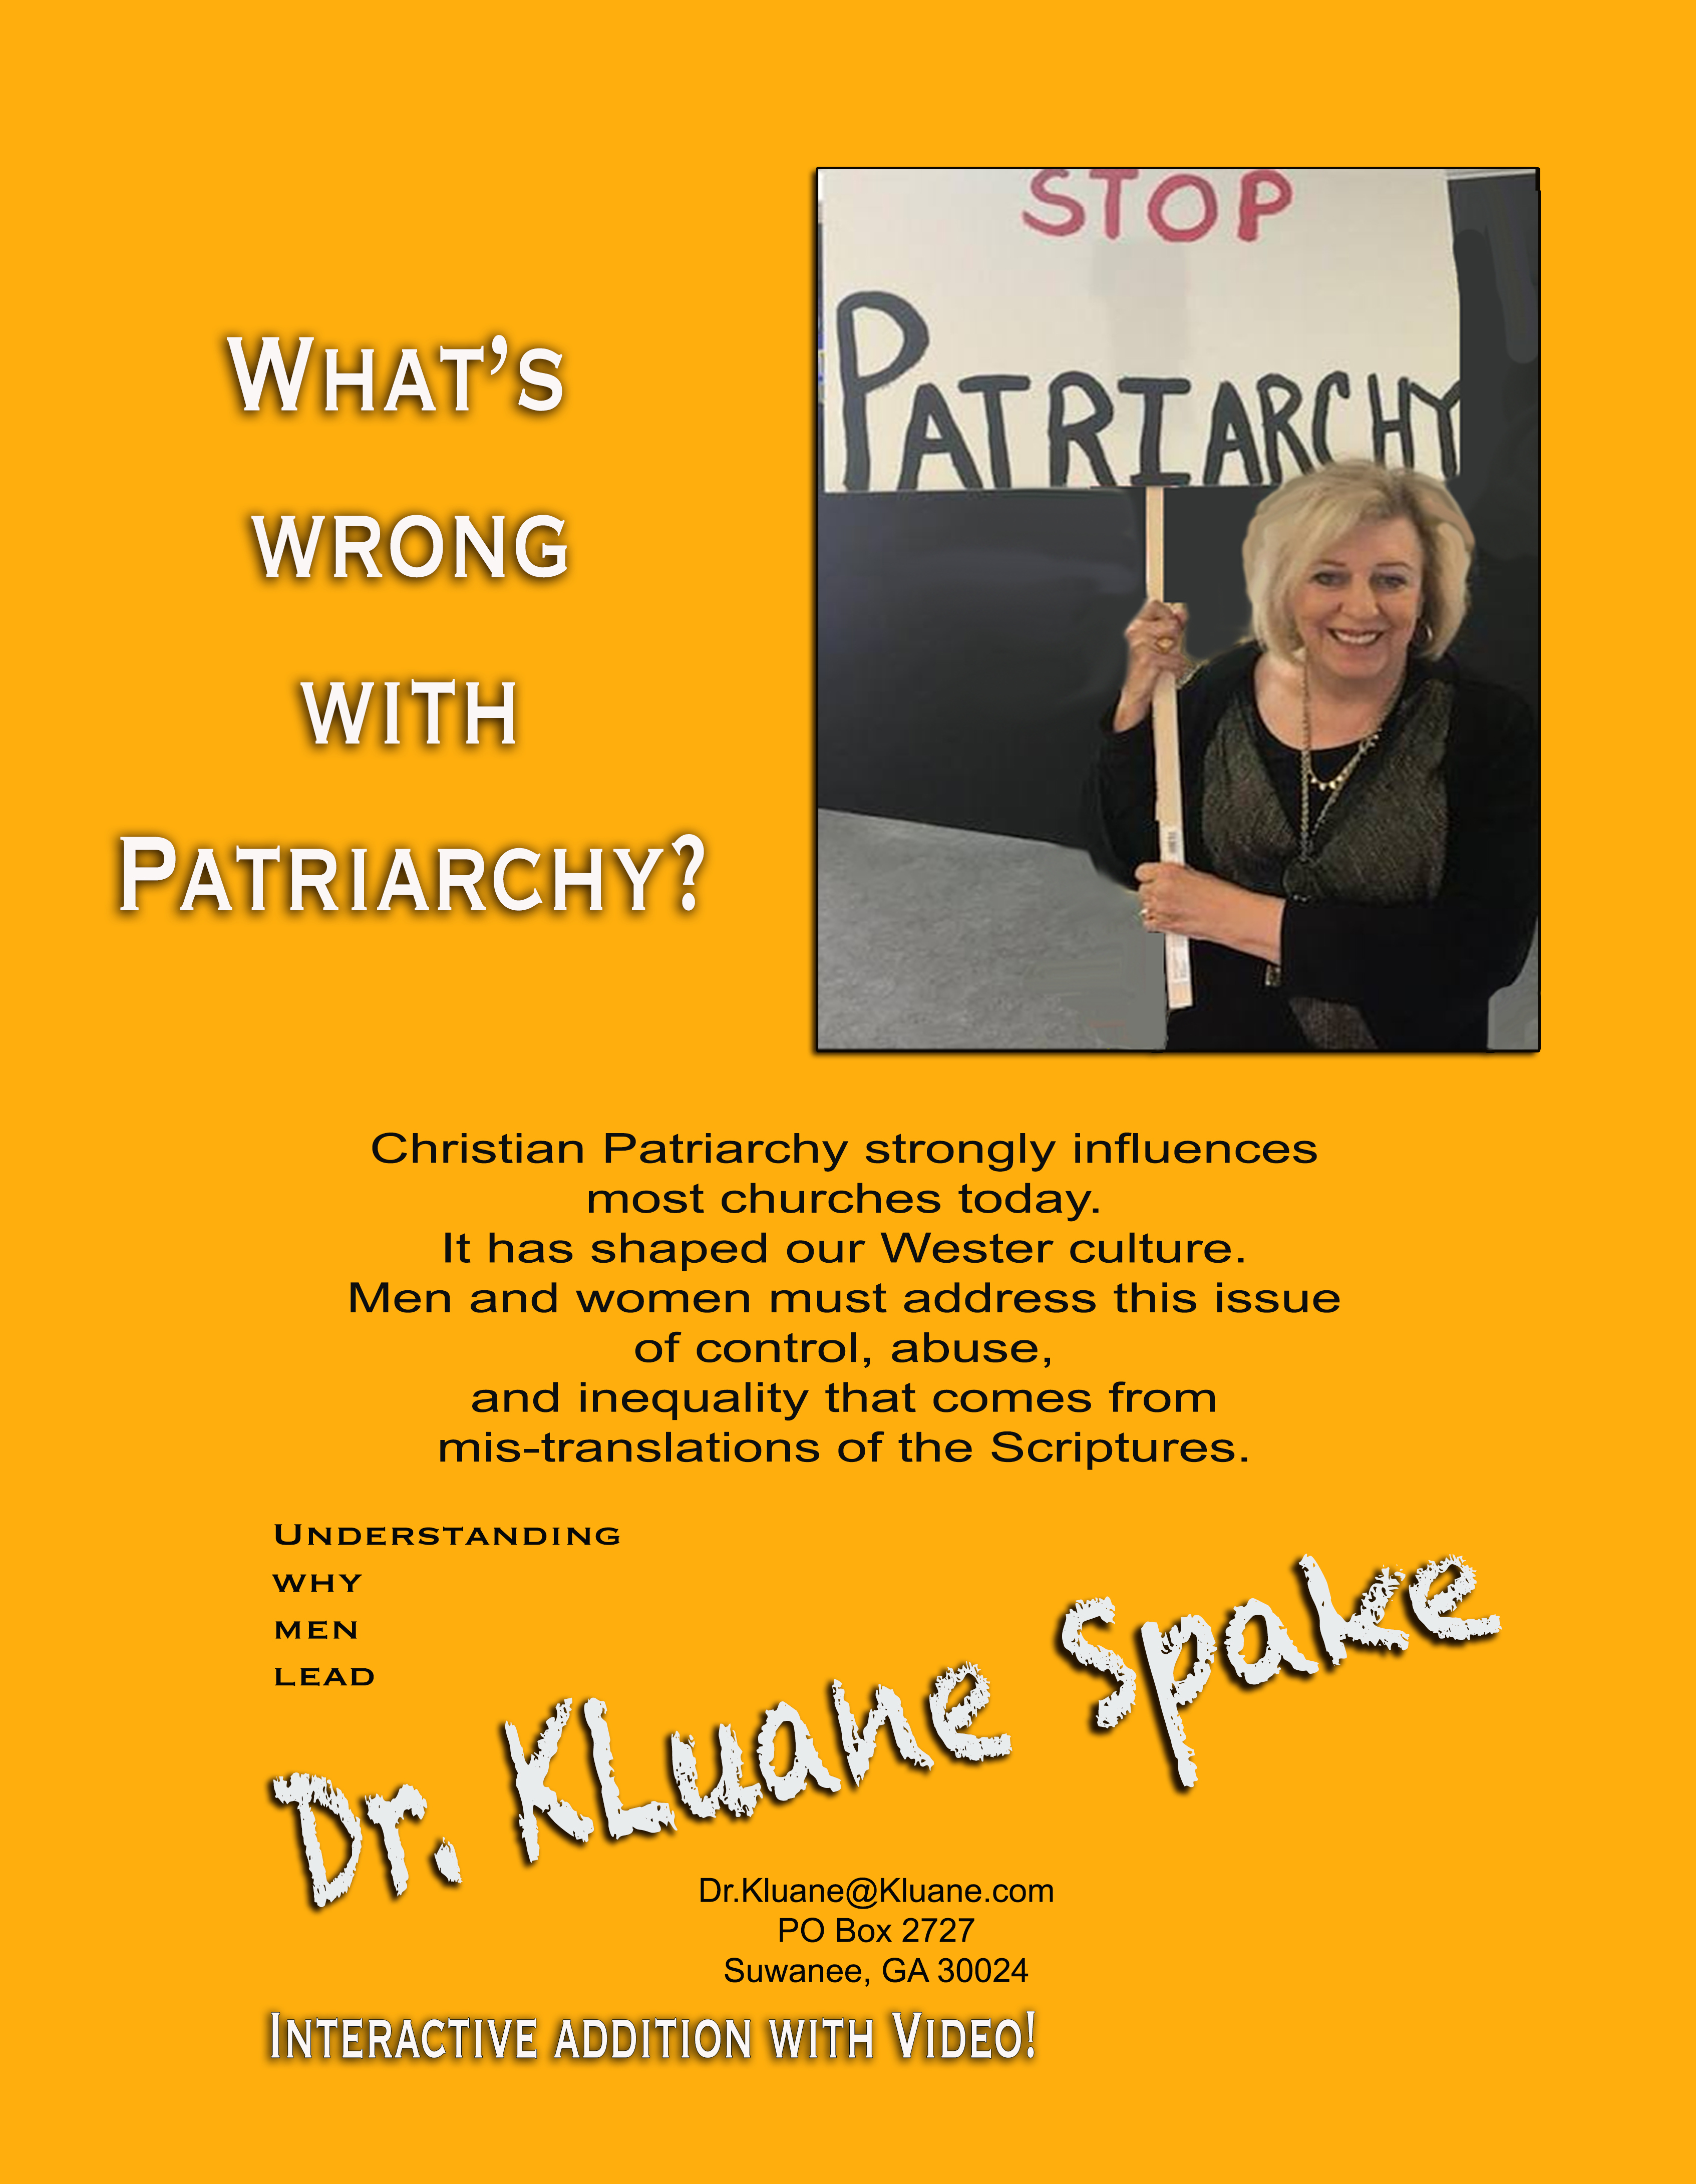 What's Wrong with Patriarchy - E-book